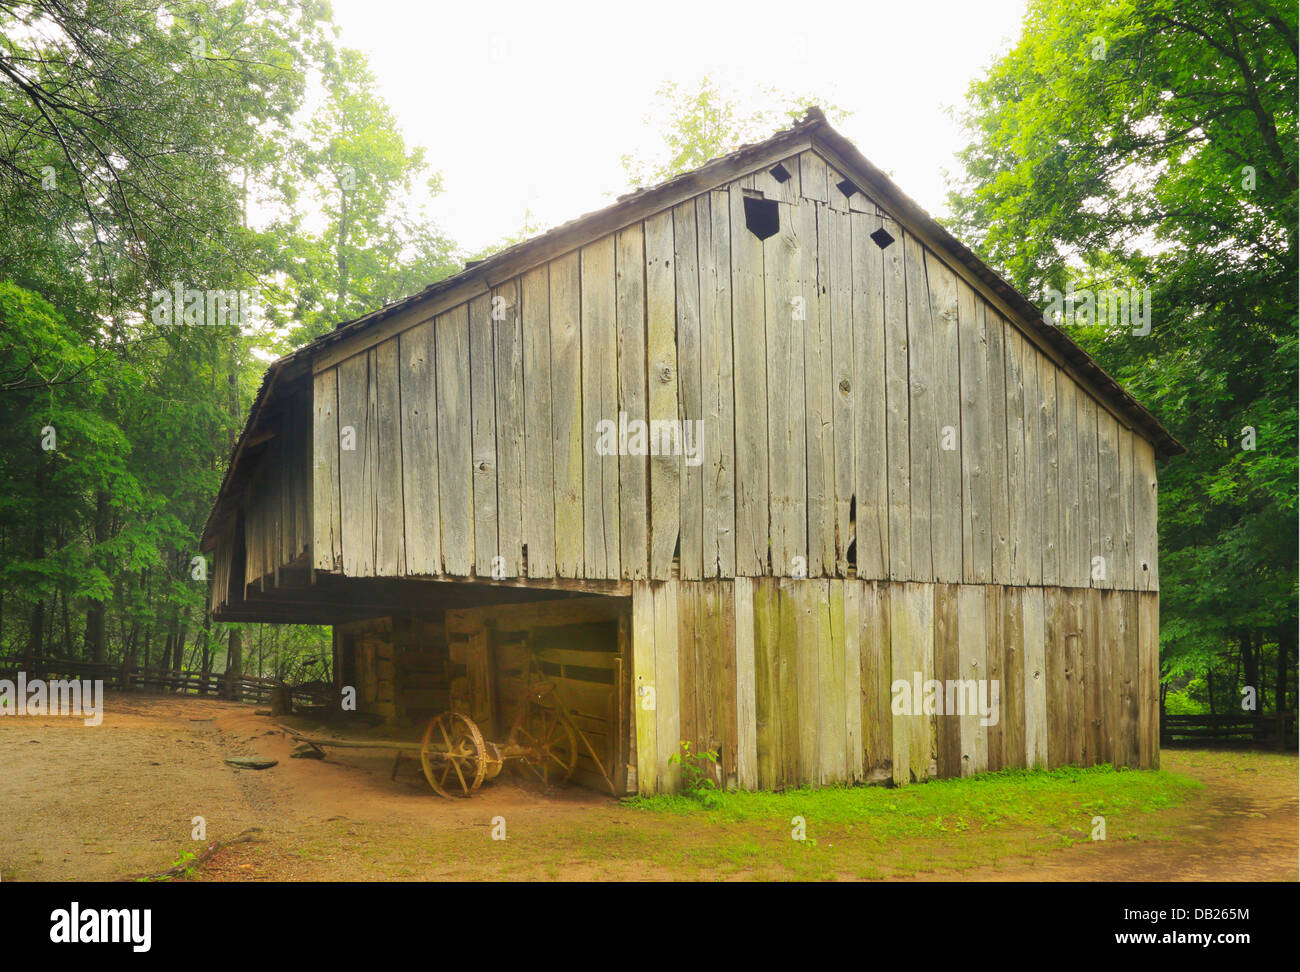 Laquire Cantilever Barn, Cable Mill Area, Cades Cove, Great Smoky Mountains National Park, Tennessee, USA - Stock Image